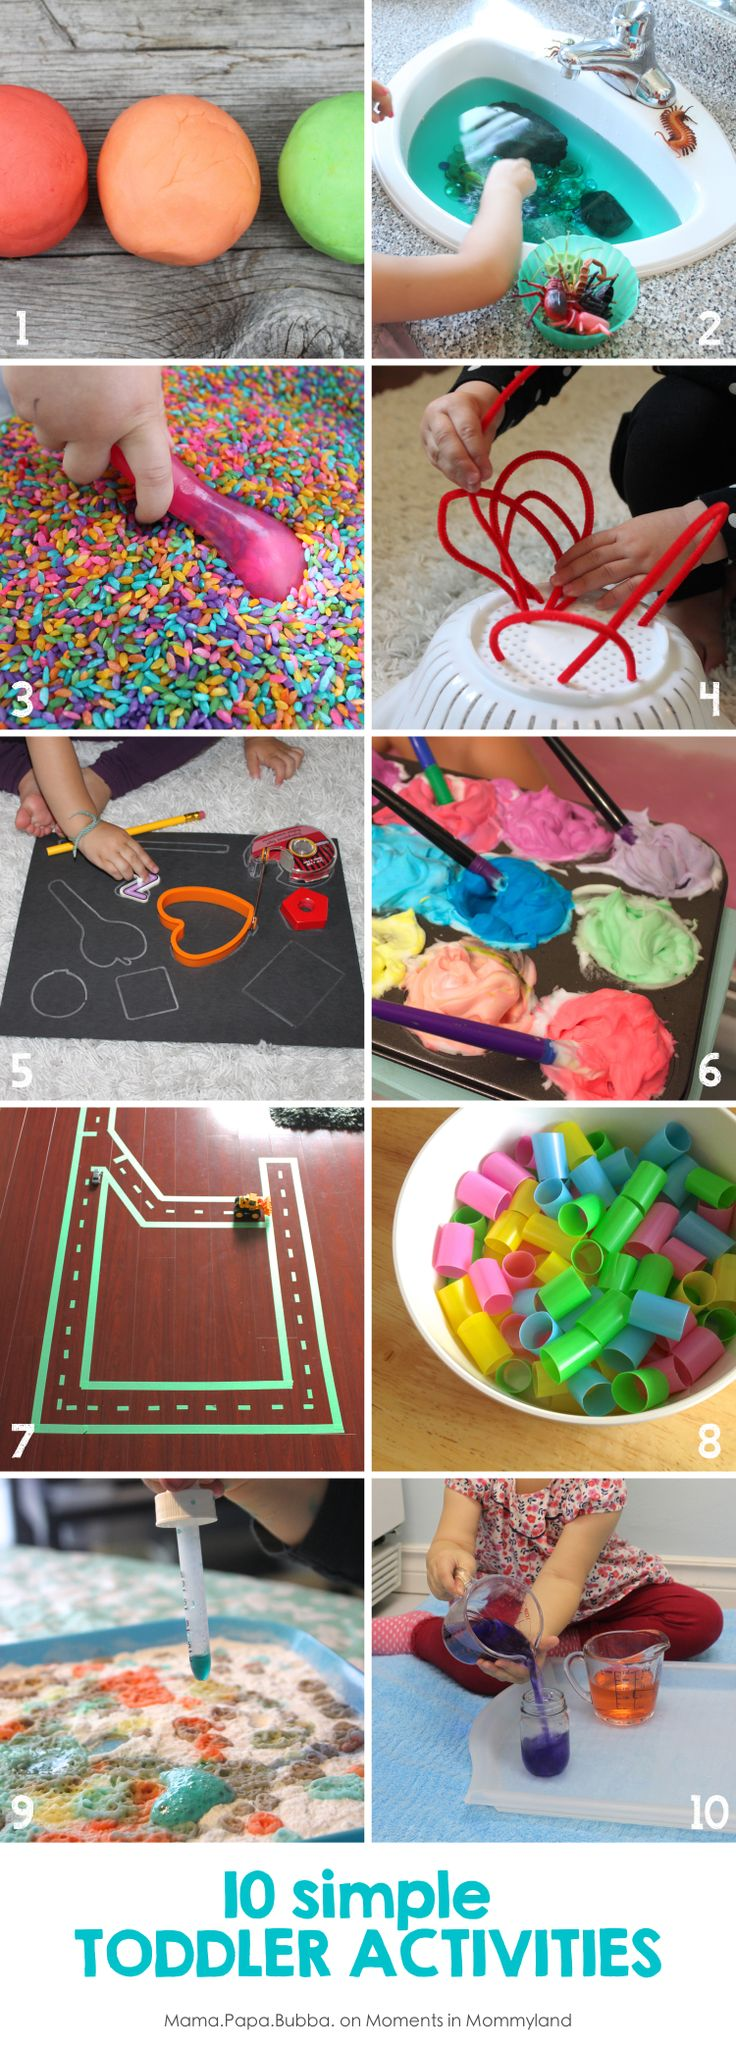 10 Simple Toddler Activities | Mama.Papa.Bubba.